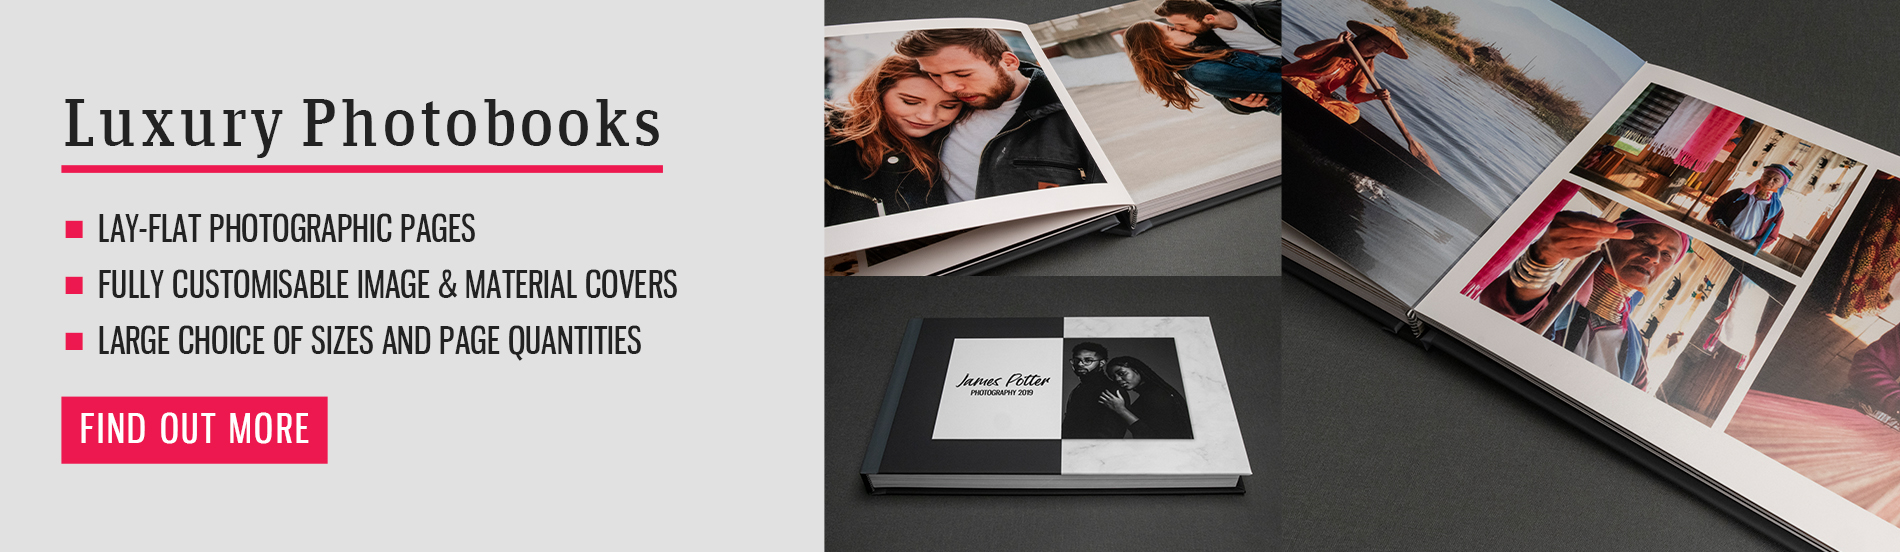 luxury photo books banner